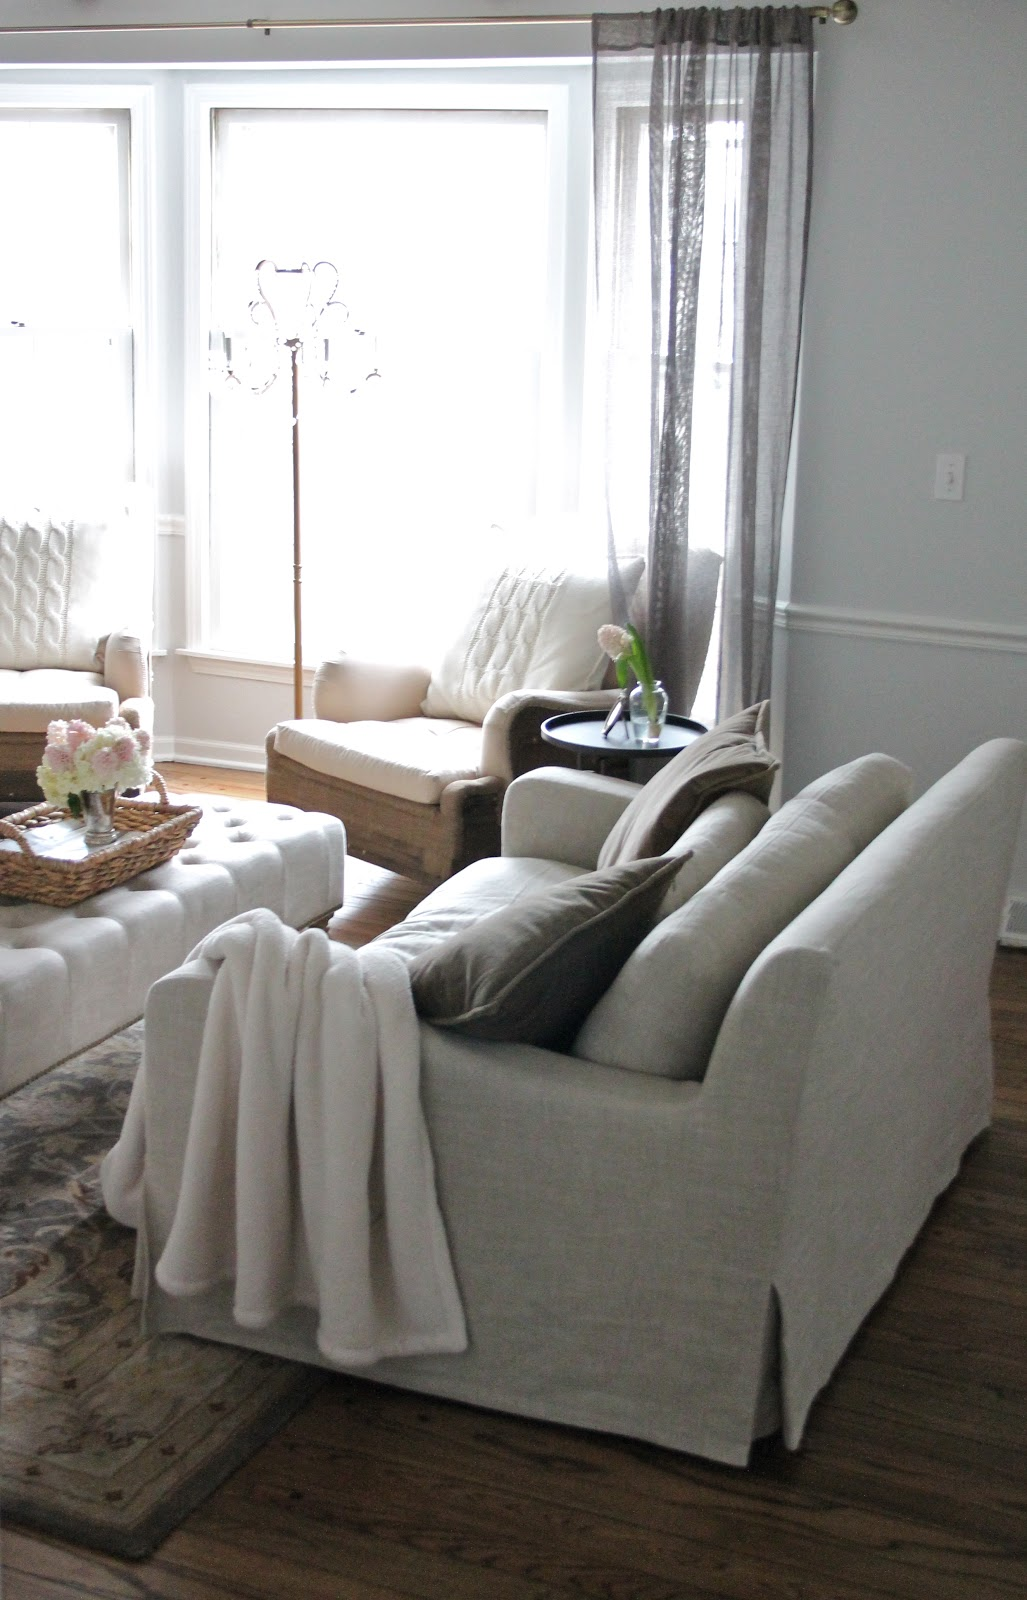 Restoration Hardware Linen Sofa Craigslist Ashley Reclining With Drop Down Table Style The Wells Collection